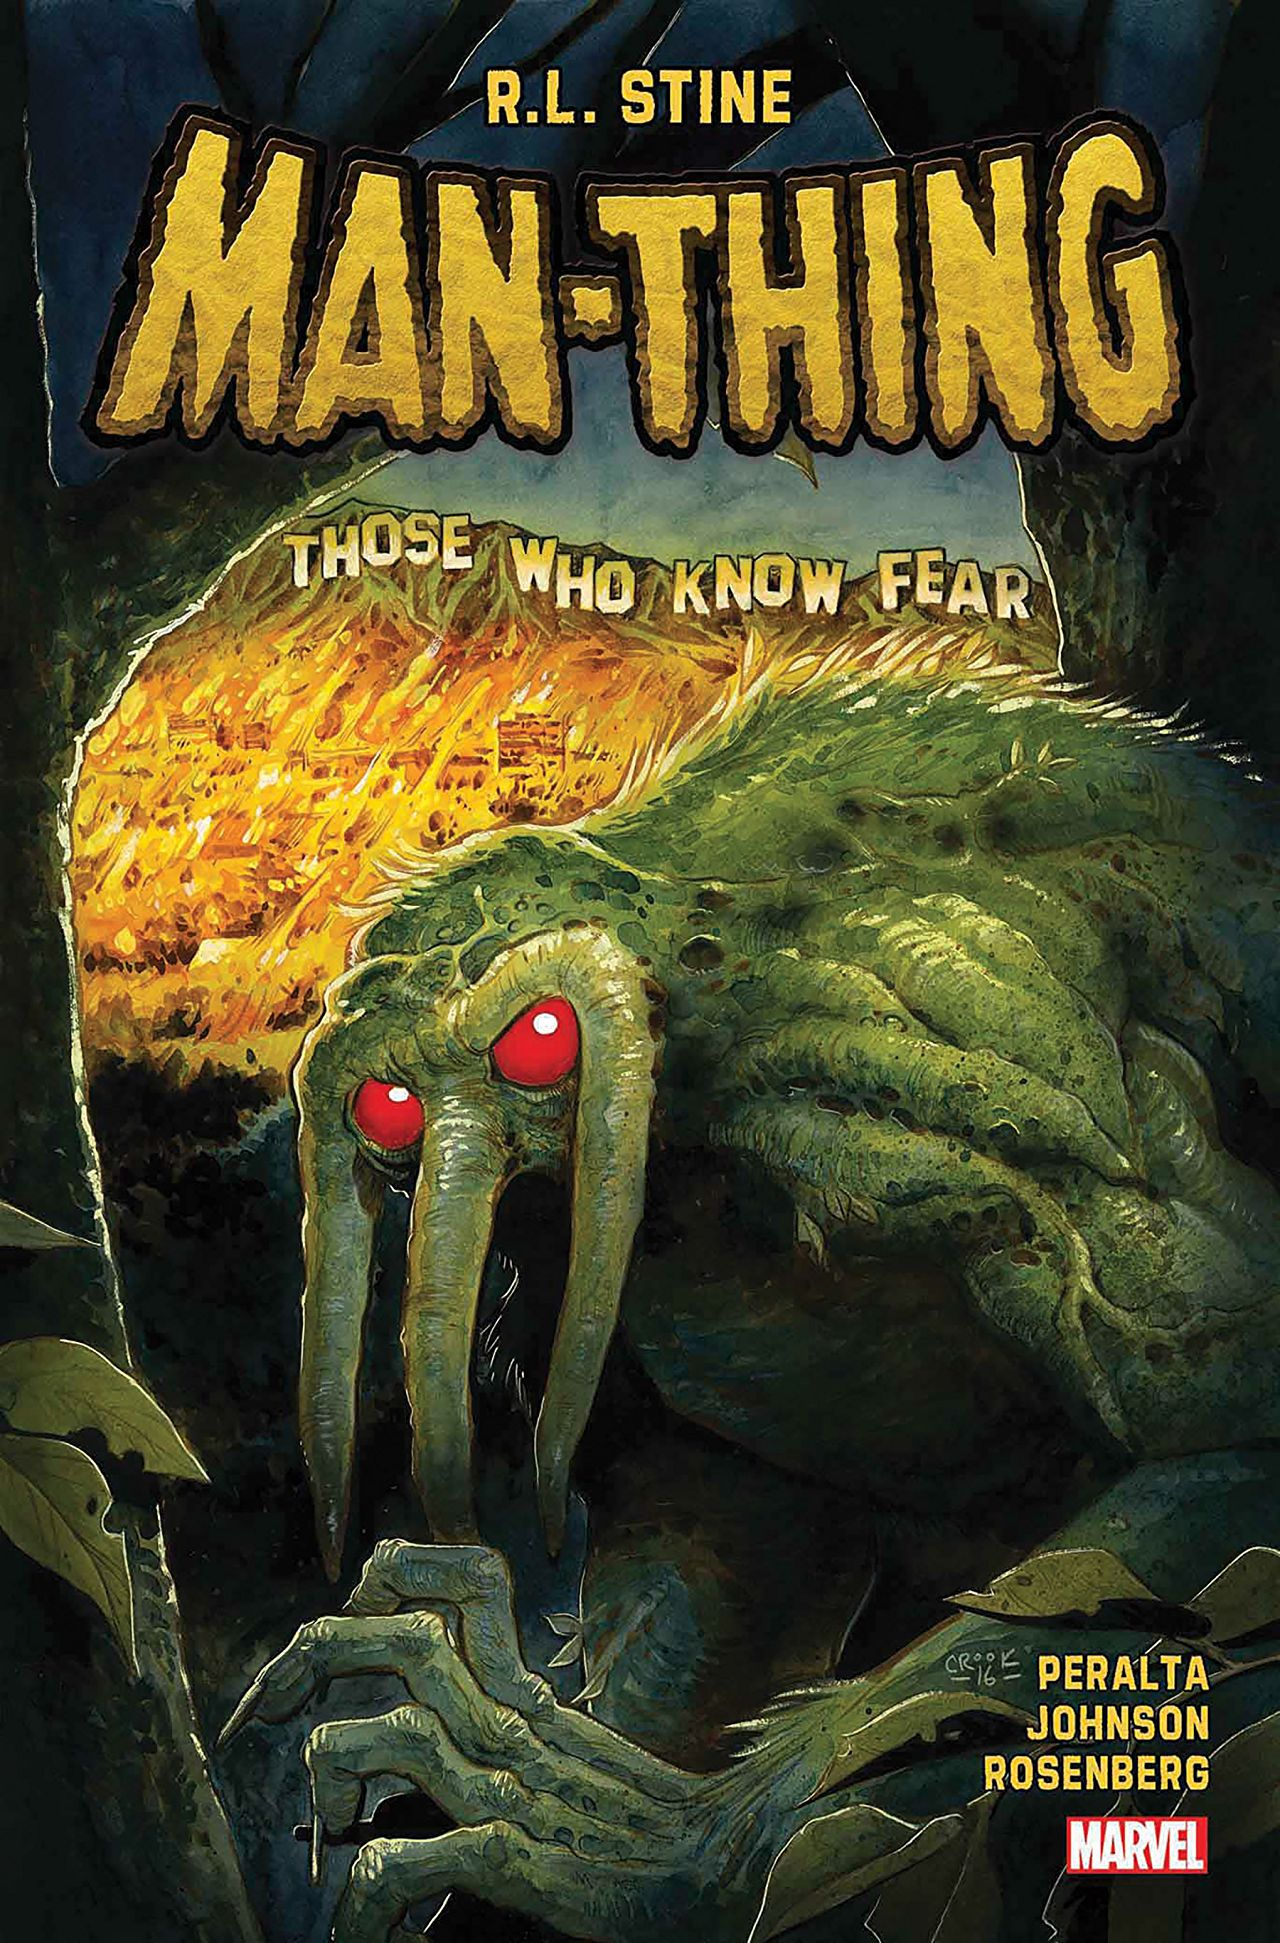 'Man-Thing by R.L. Stine' review: Surprisingly lifeless